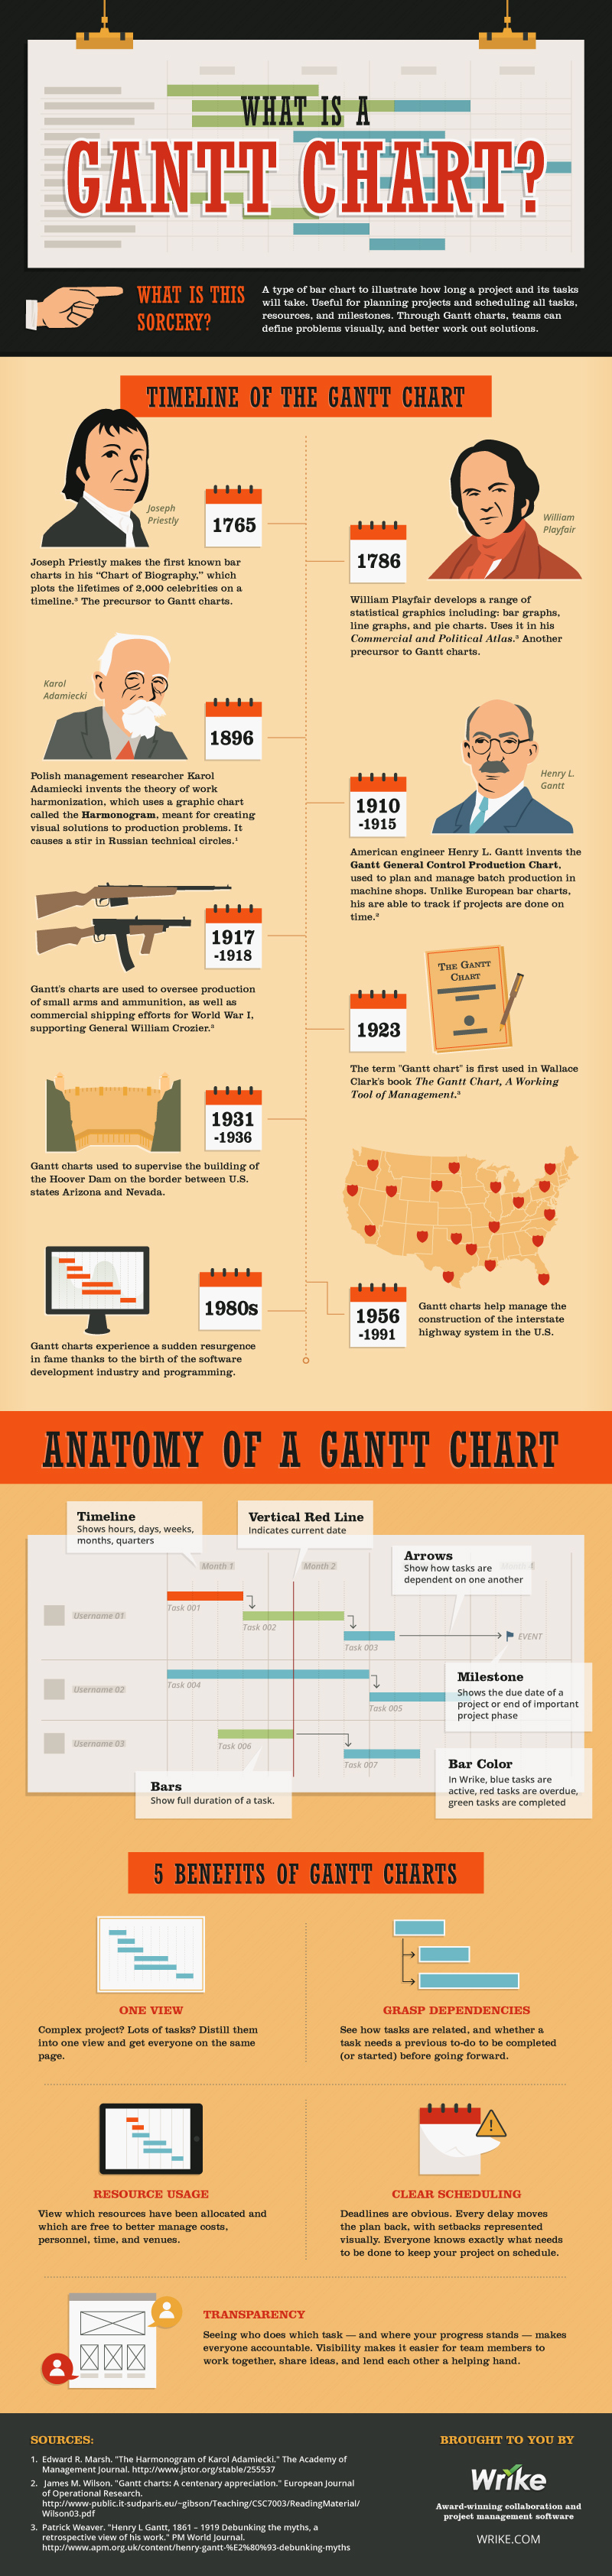 INFOGRAPHIC: What is a Gantt Chart for Project Management?